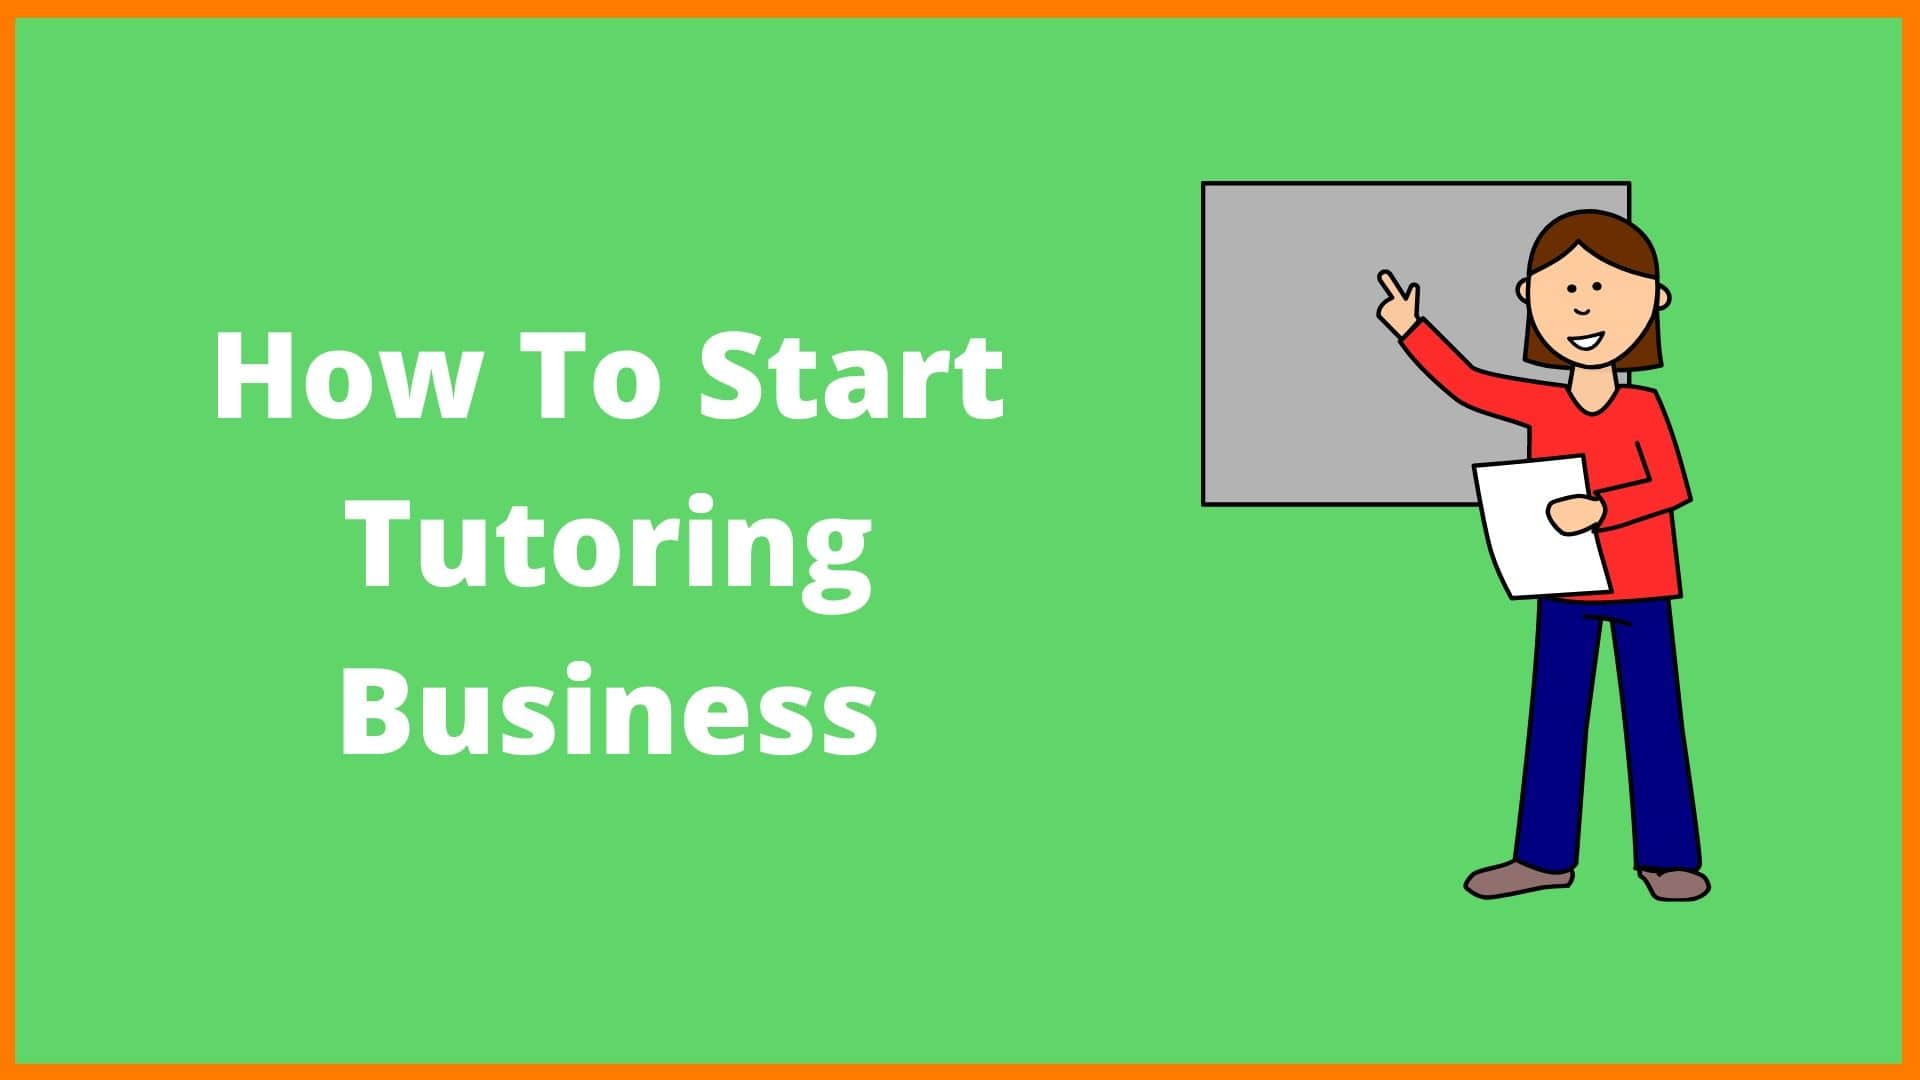 How To Start A Tutoring Business | How To Start A Tutoring Business in India?